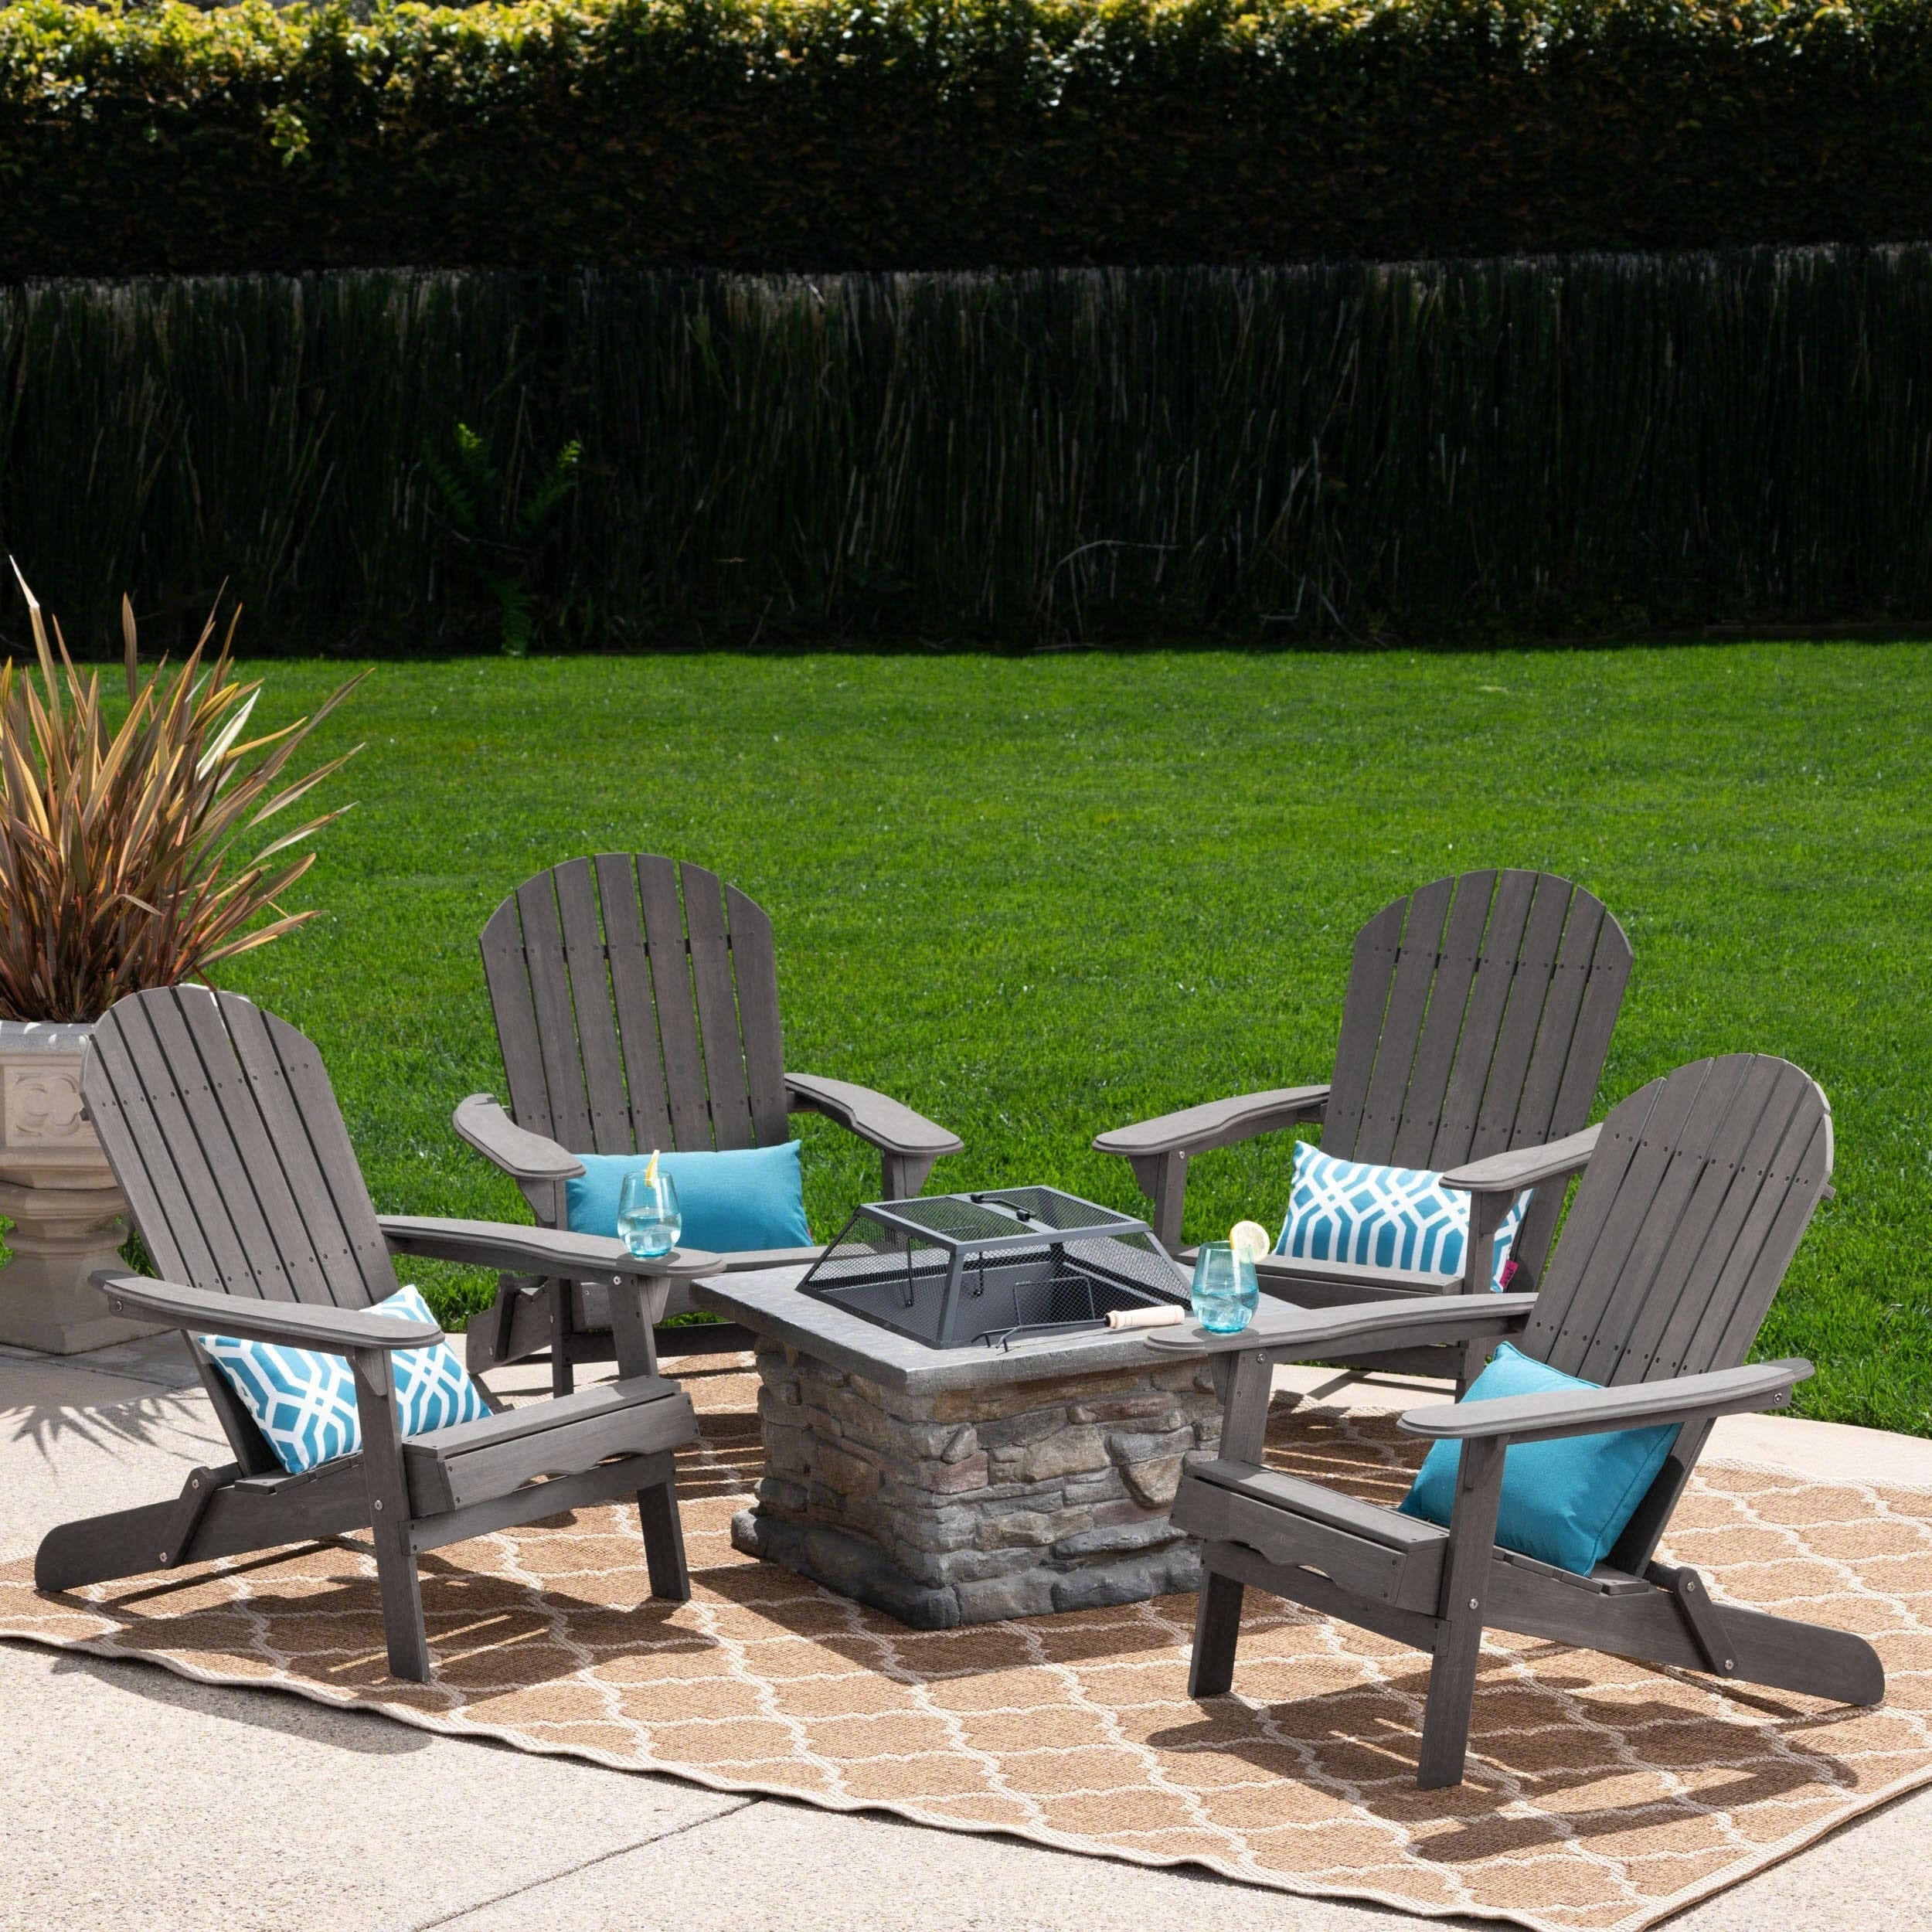 Marrion Outdoor 5 Piece Adirondack Chair Set With Fire Pit By Christopher Knight Home On Free Shipping Today 21135655